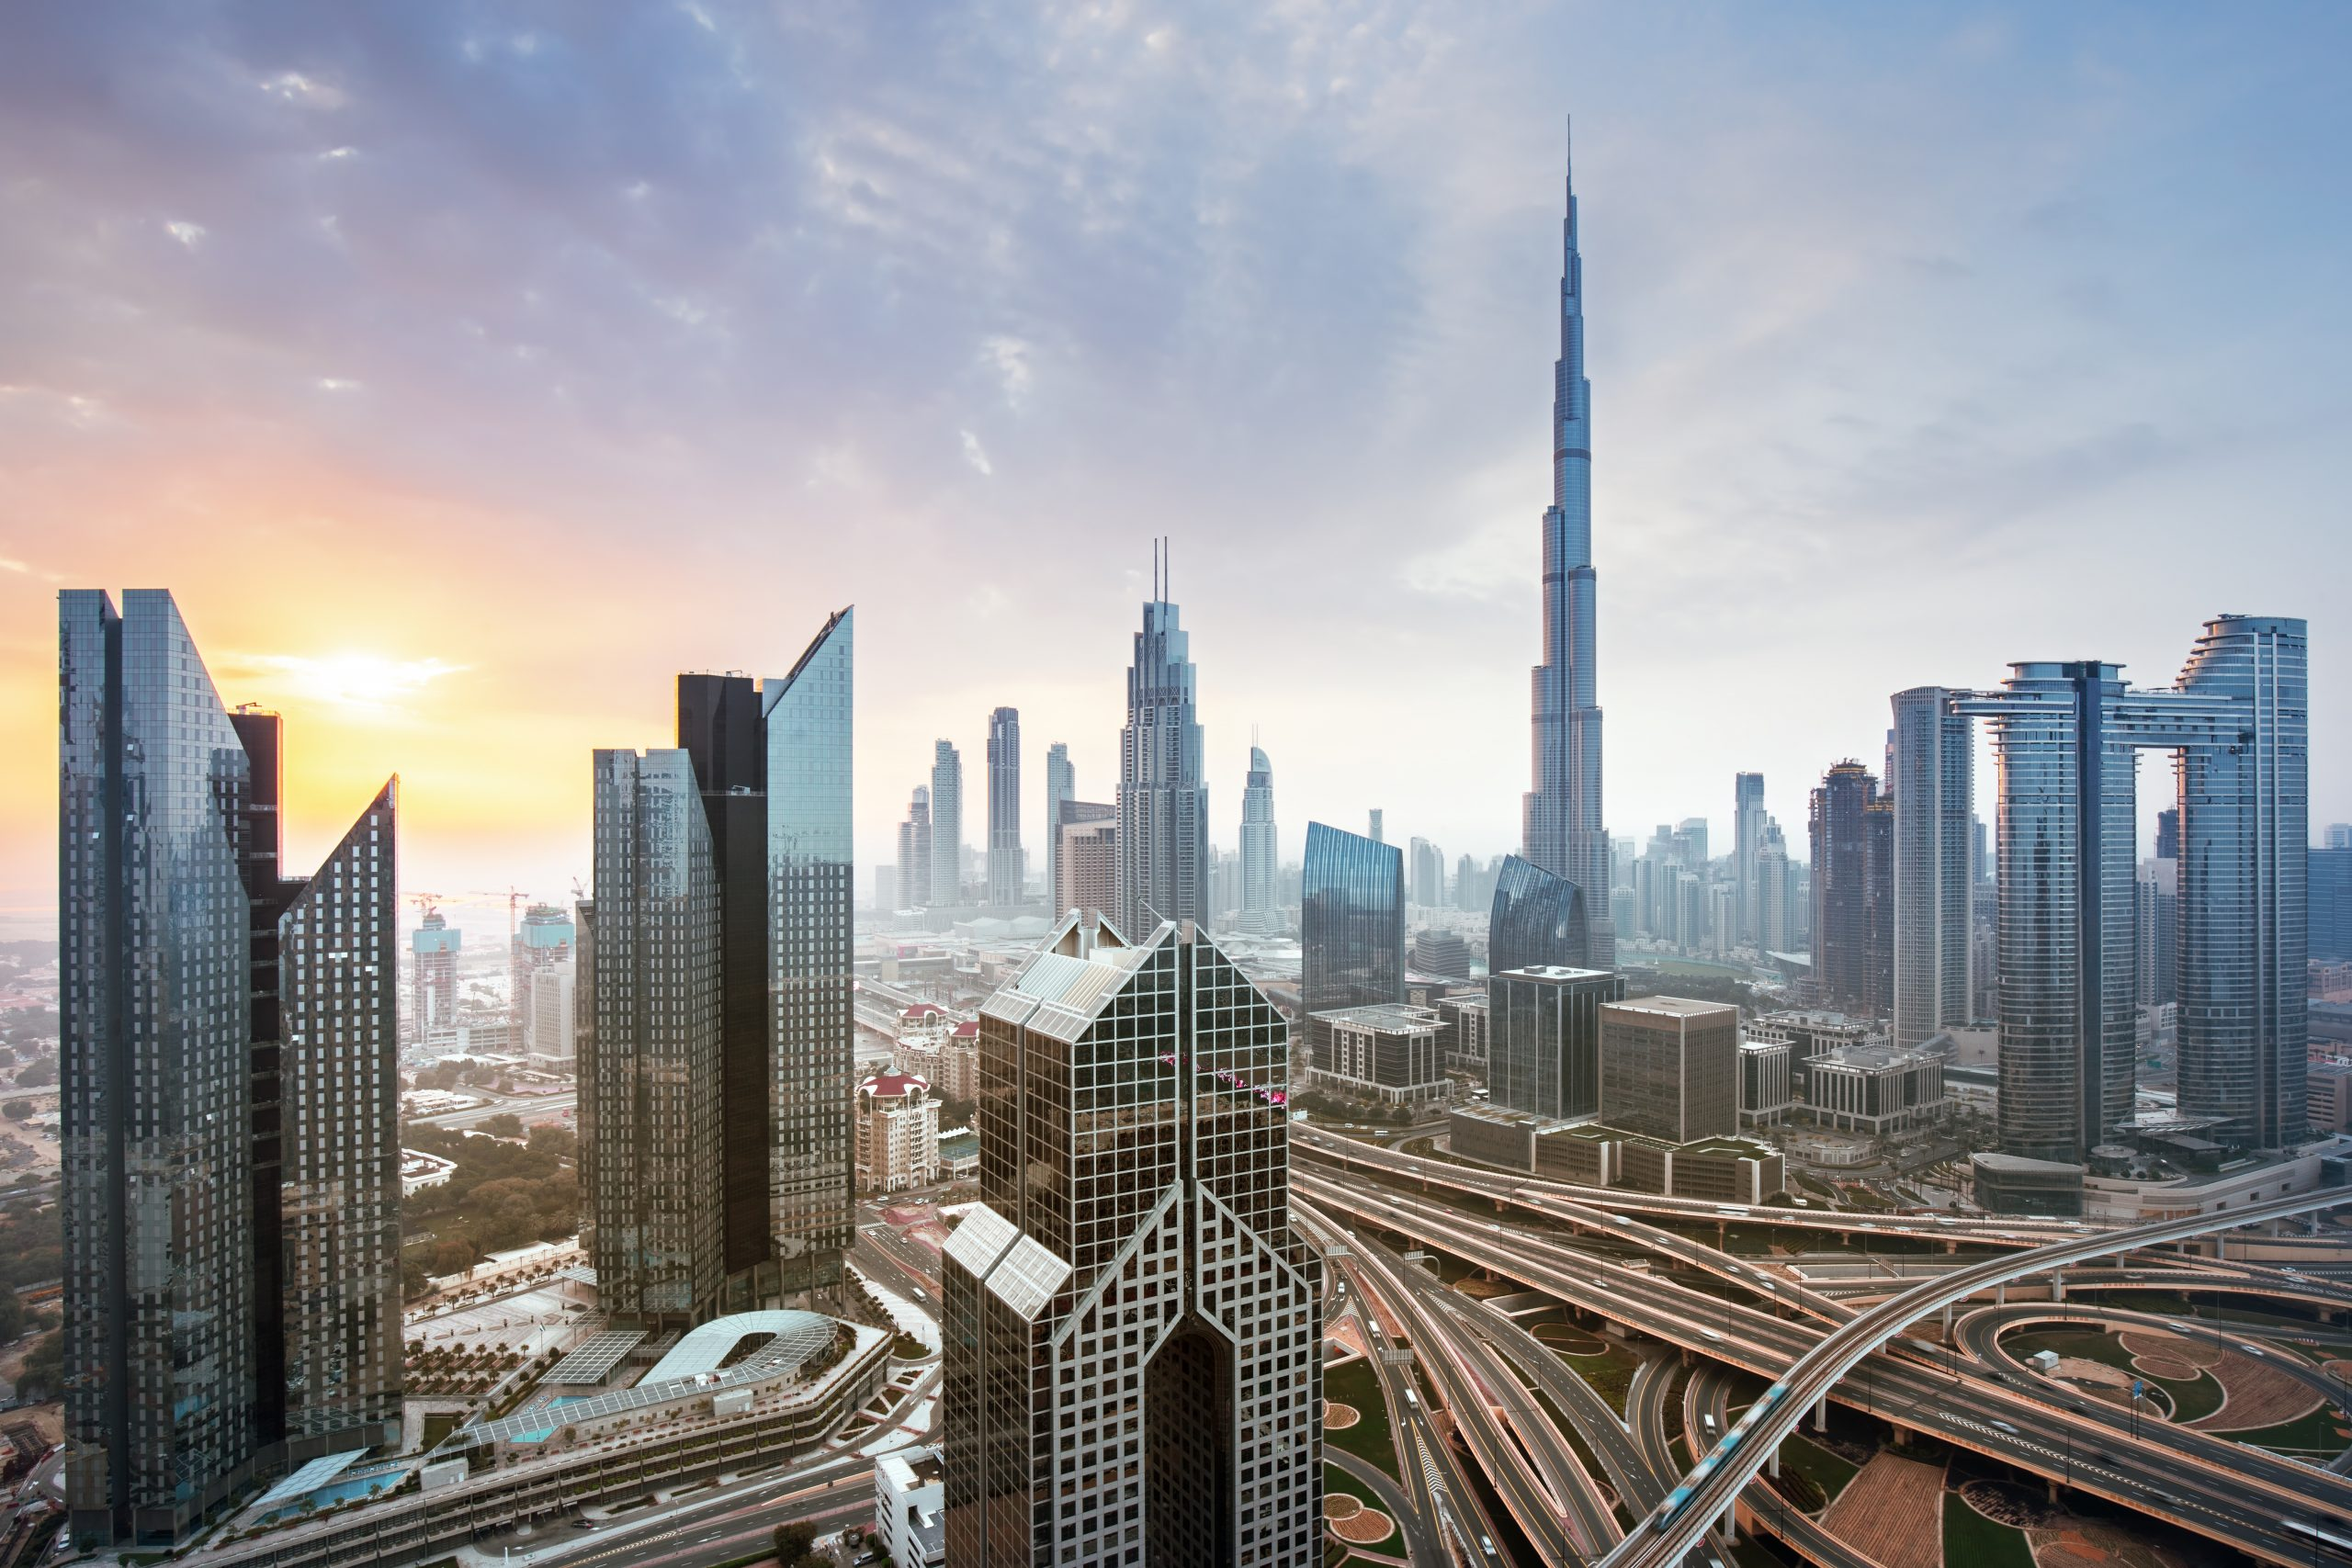 UAE launching golden visa allowing long-term residence for certain professions